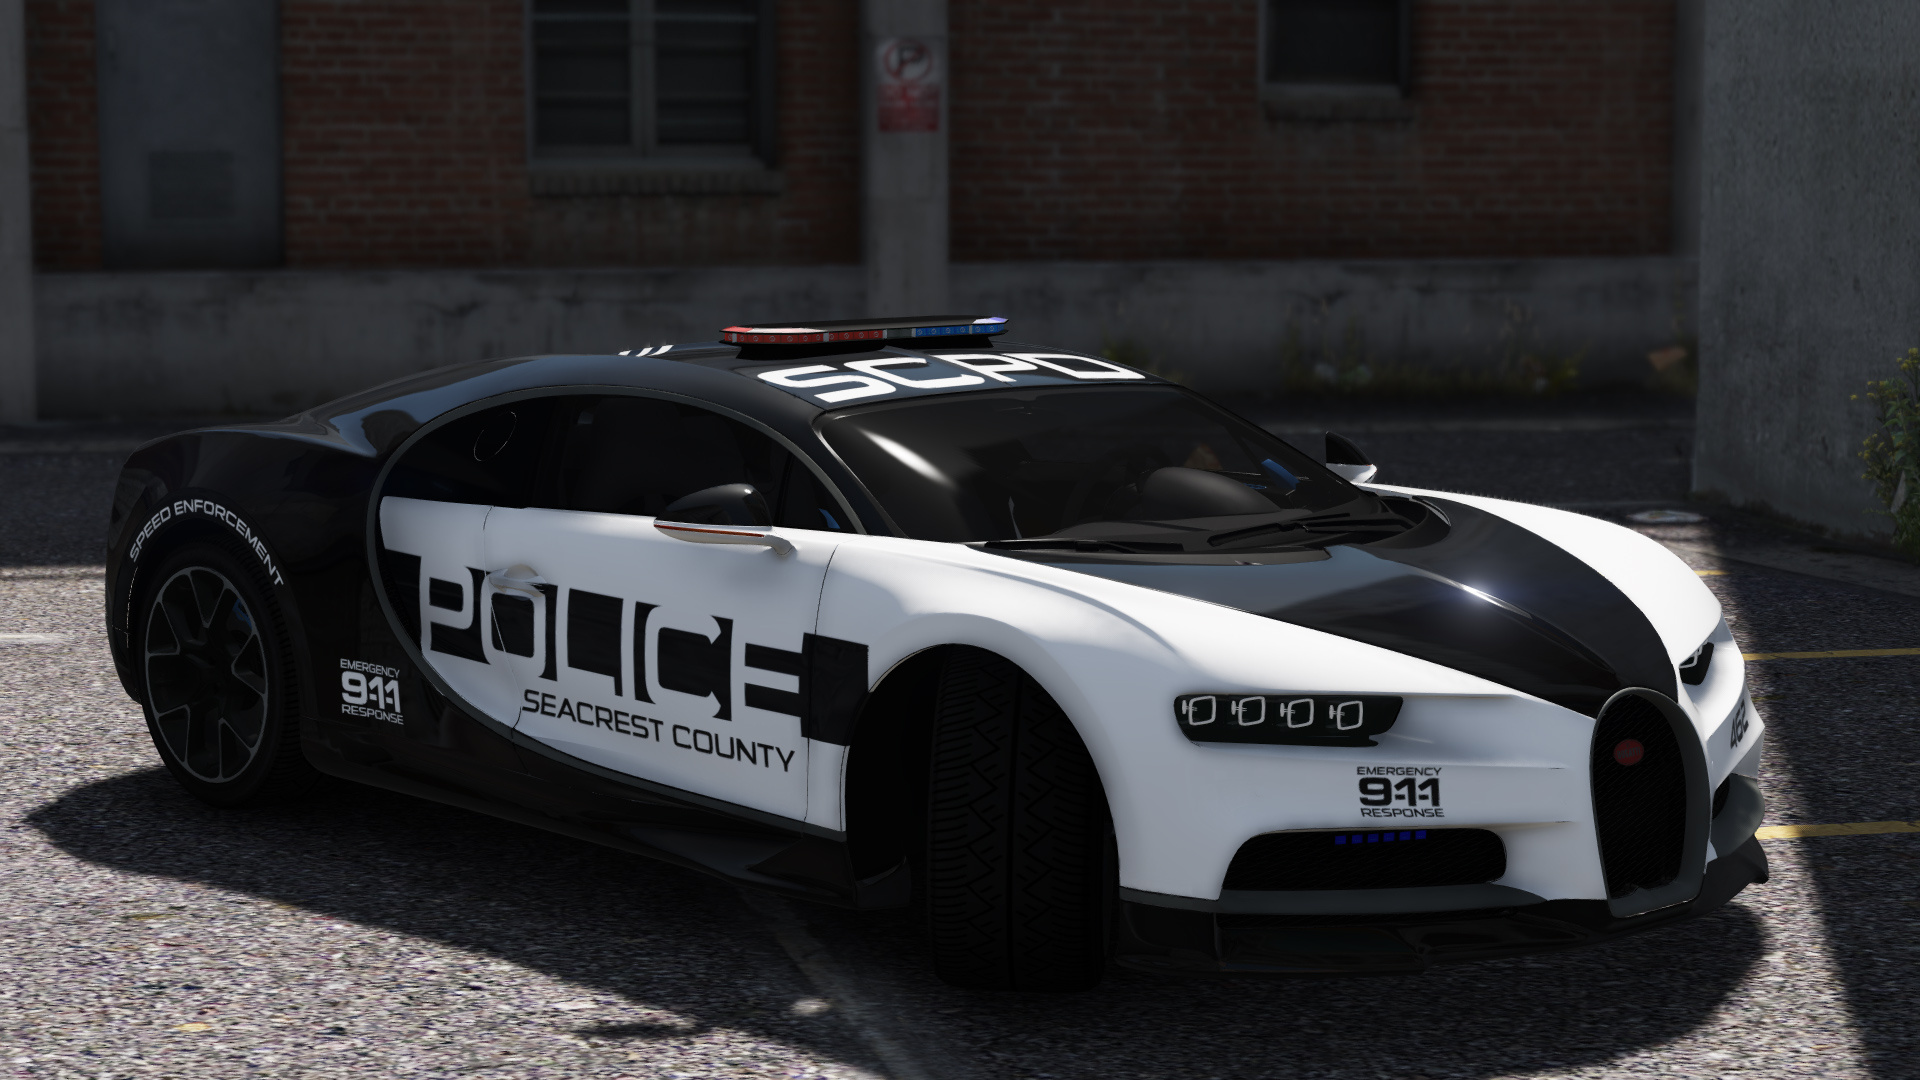 2016 ford gt super car with Bugatti Chiron Hot Pursuit Police Add On Replace Template on 02 besides De Tomaso Pantera Gt5 S For Sale Lhd as well South ton City Wallpaper likewise 14 additionally 2003 e2 86 922006 Ford Gt 2.